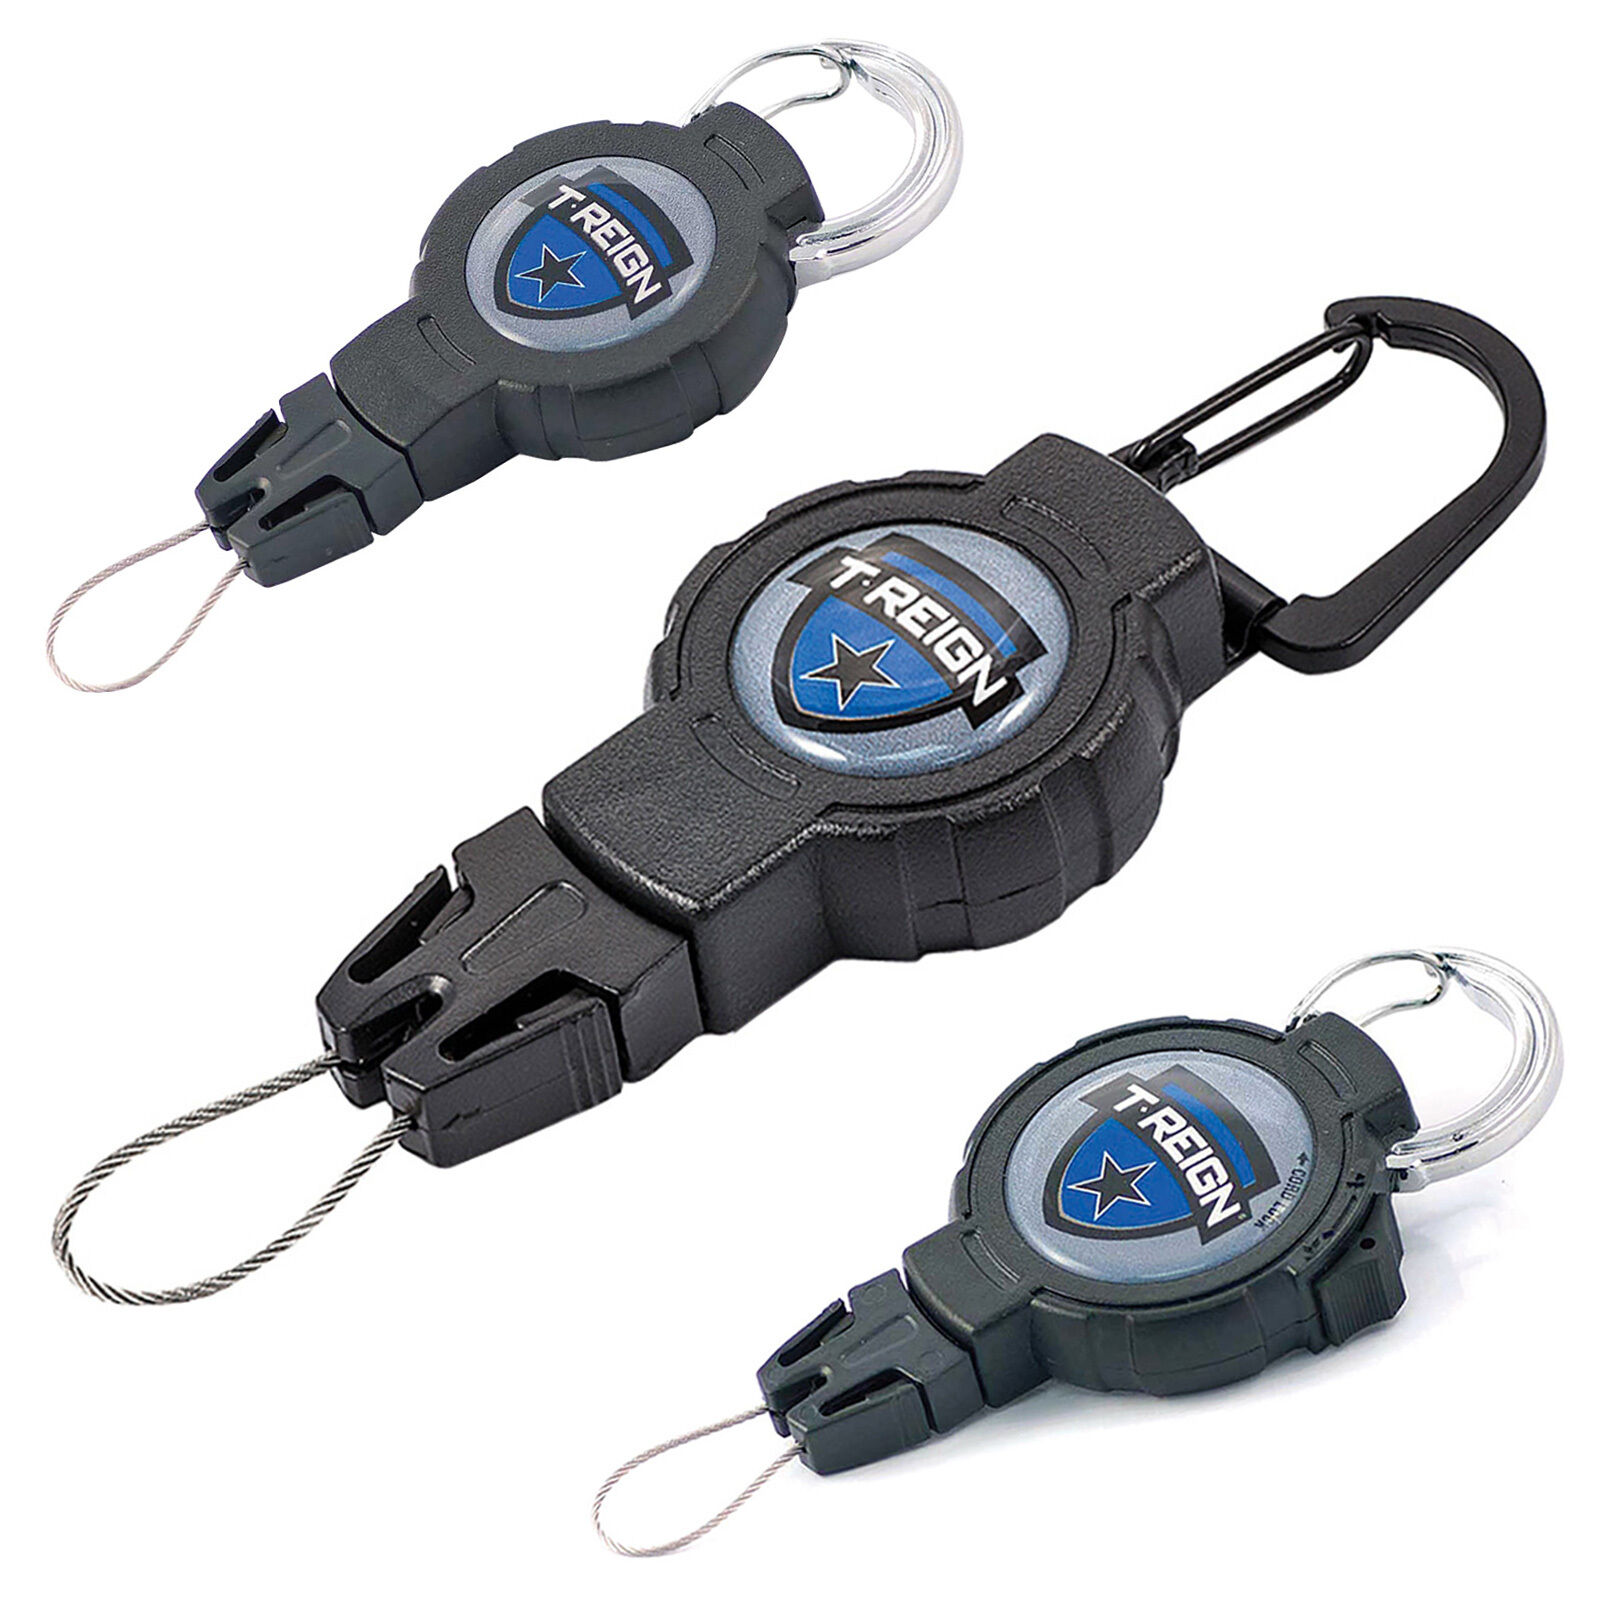 T-Reign Retractable Outdoor Tactical Military Gear Tether Lanyard with Kevlar